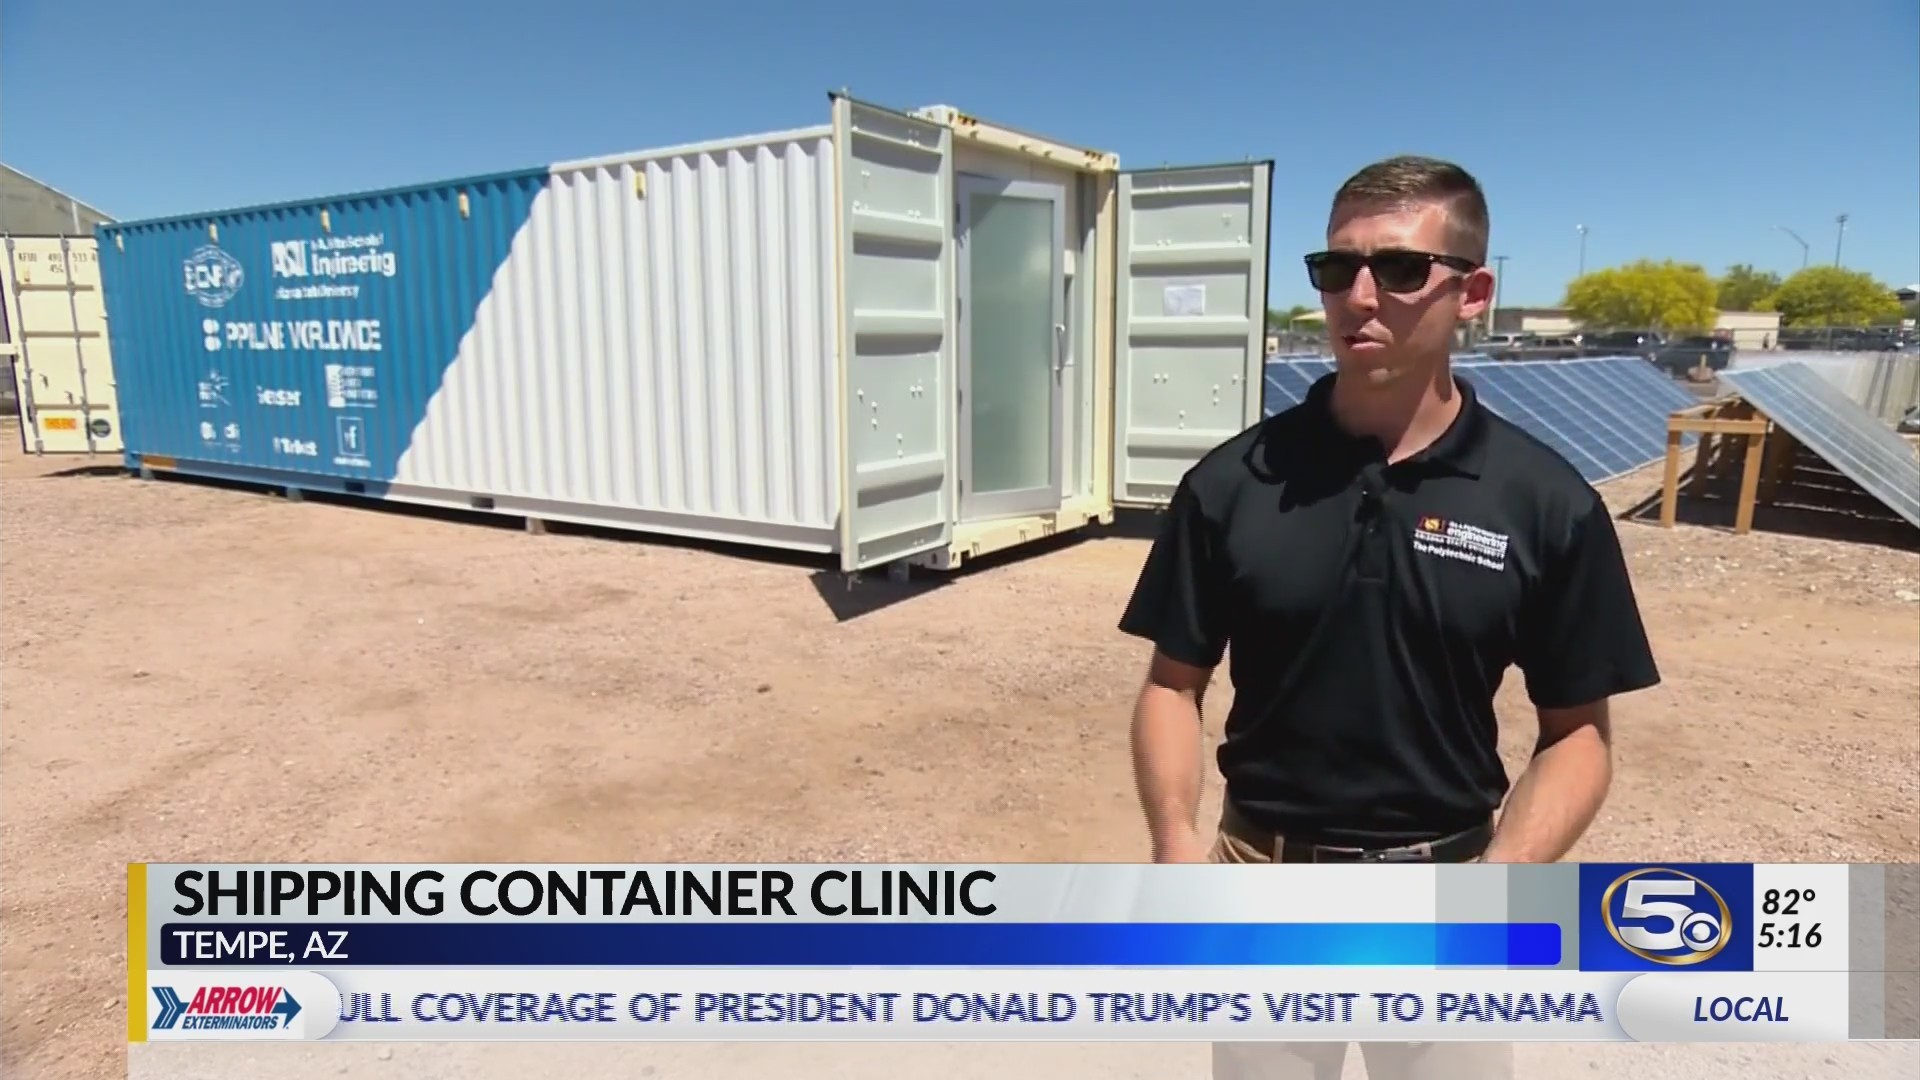 VIDEO: Student researchers turn shipping containers into solar powered medical clinics